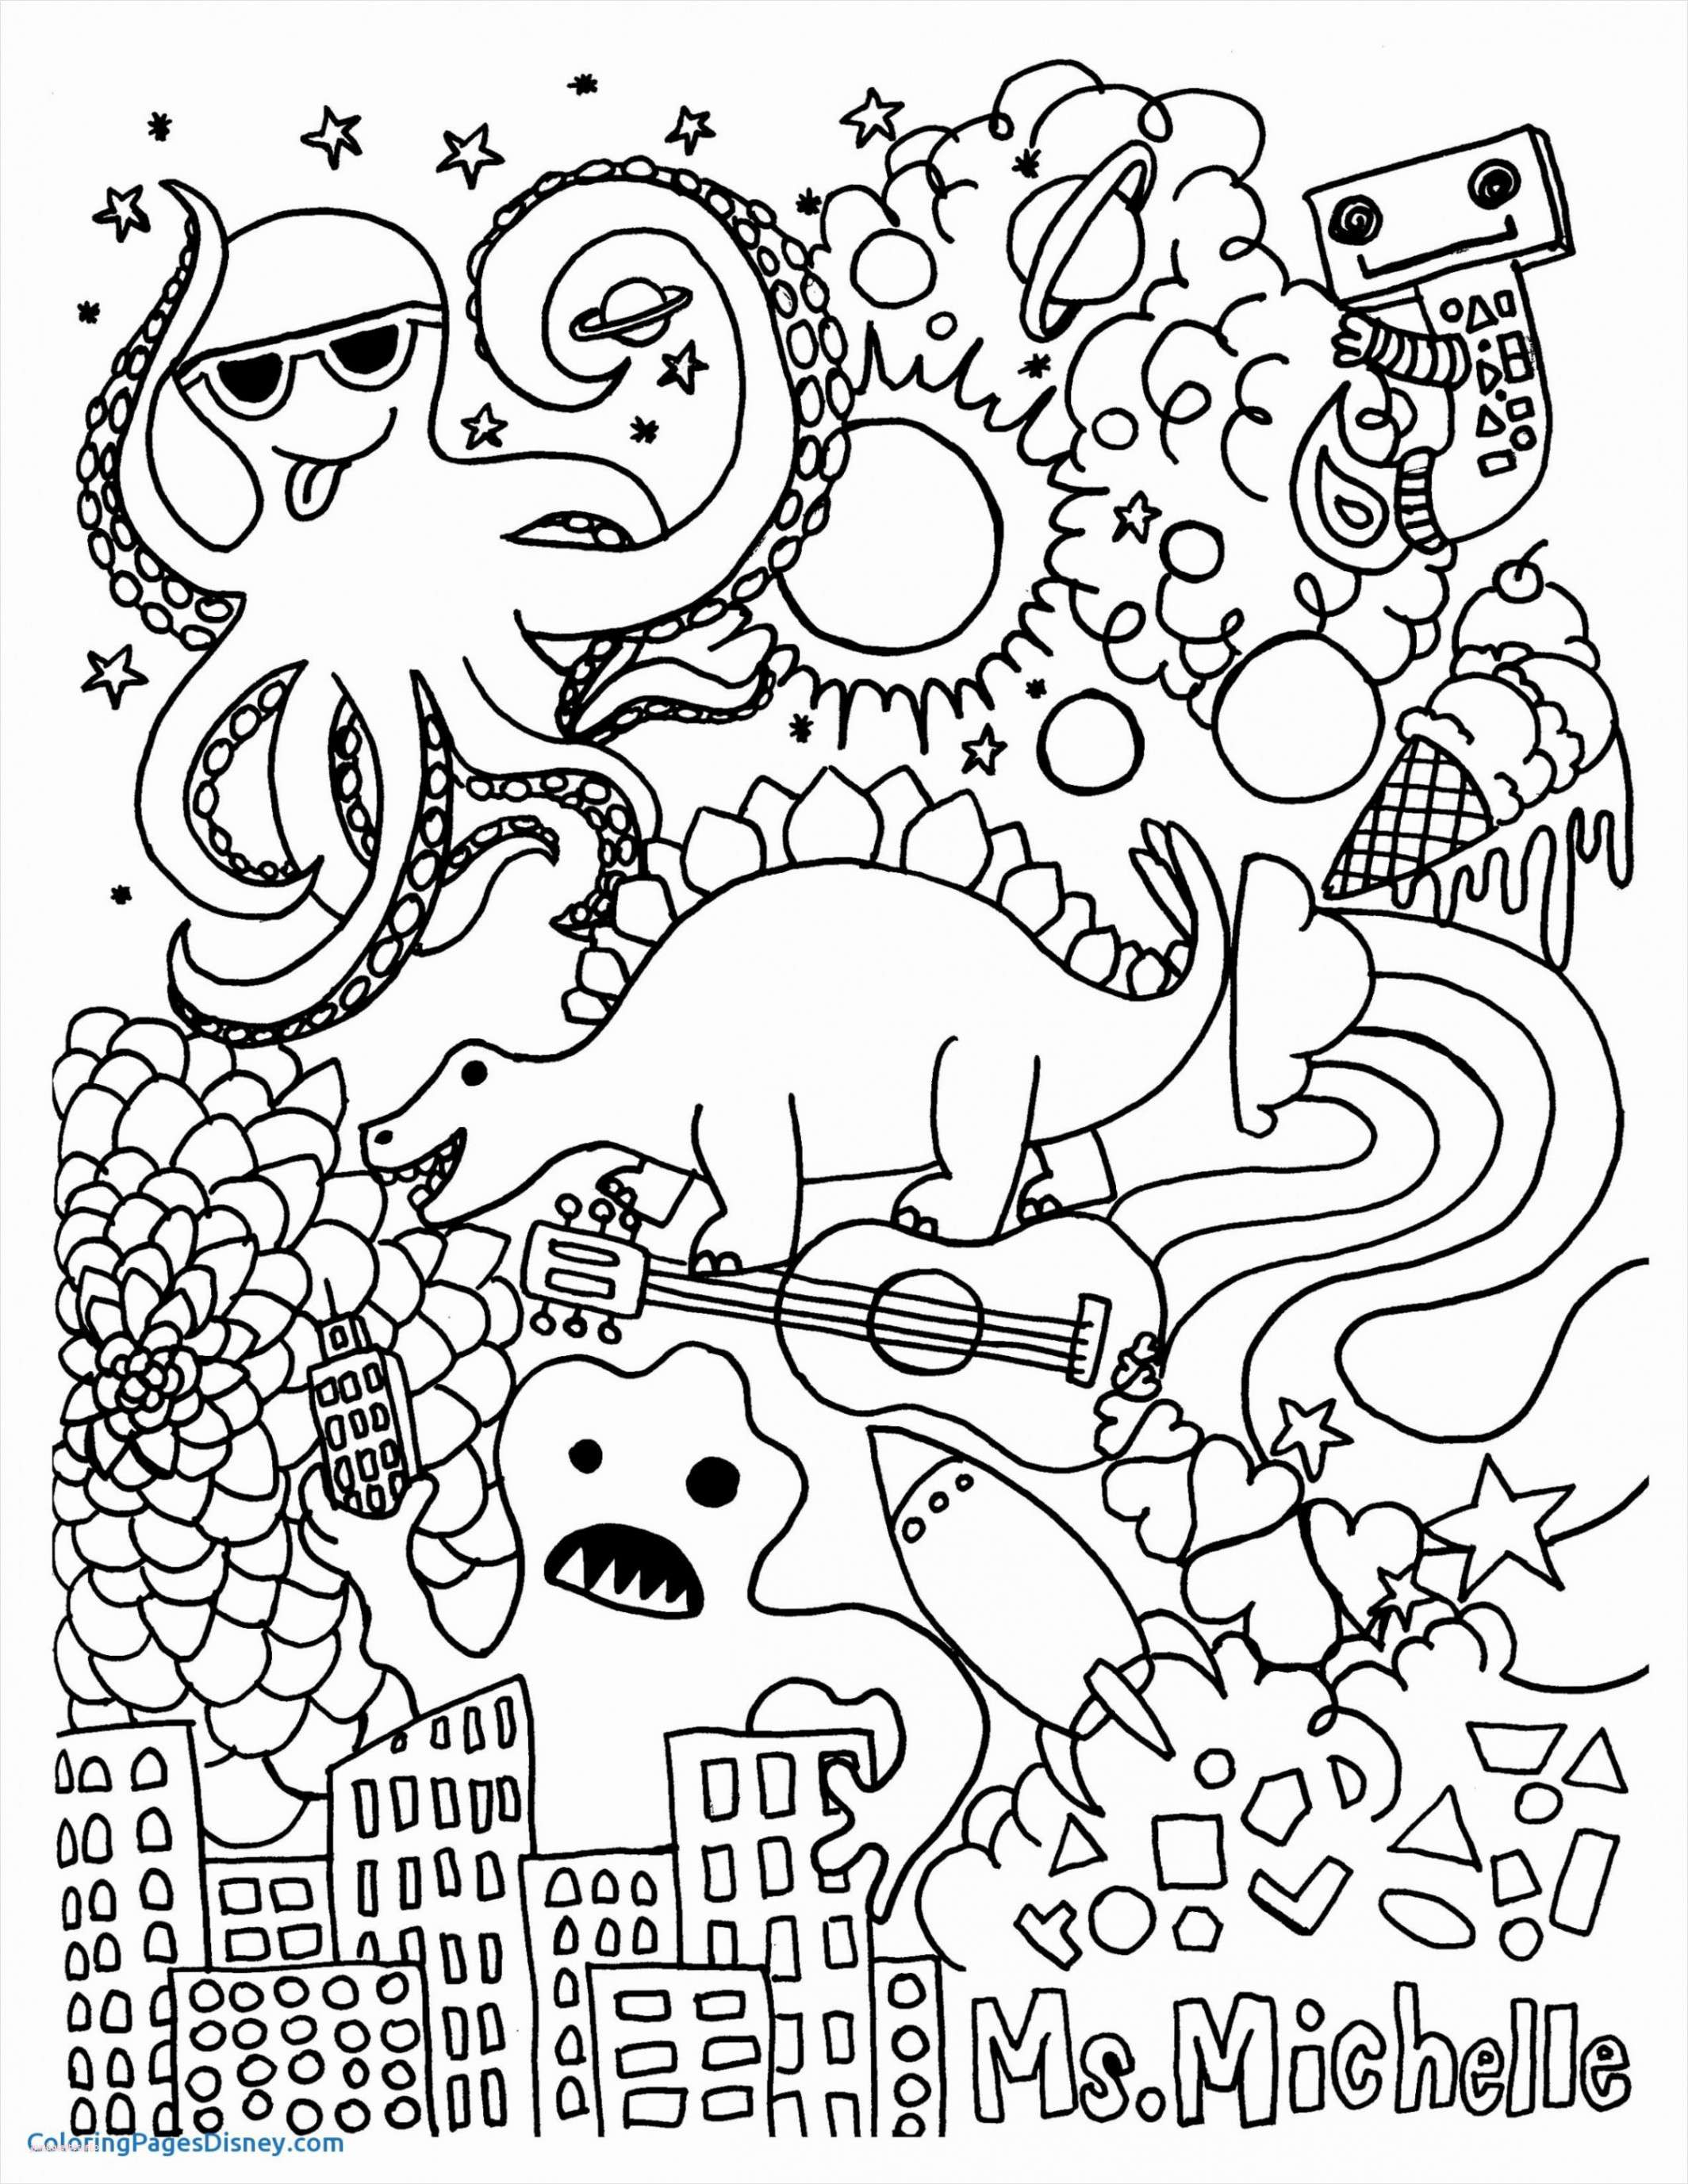 Coloring Pages Of Sugar Skulls  Download 2g - Save it to your computer